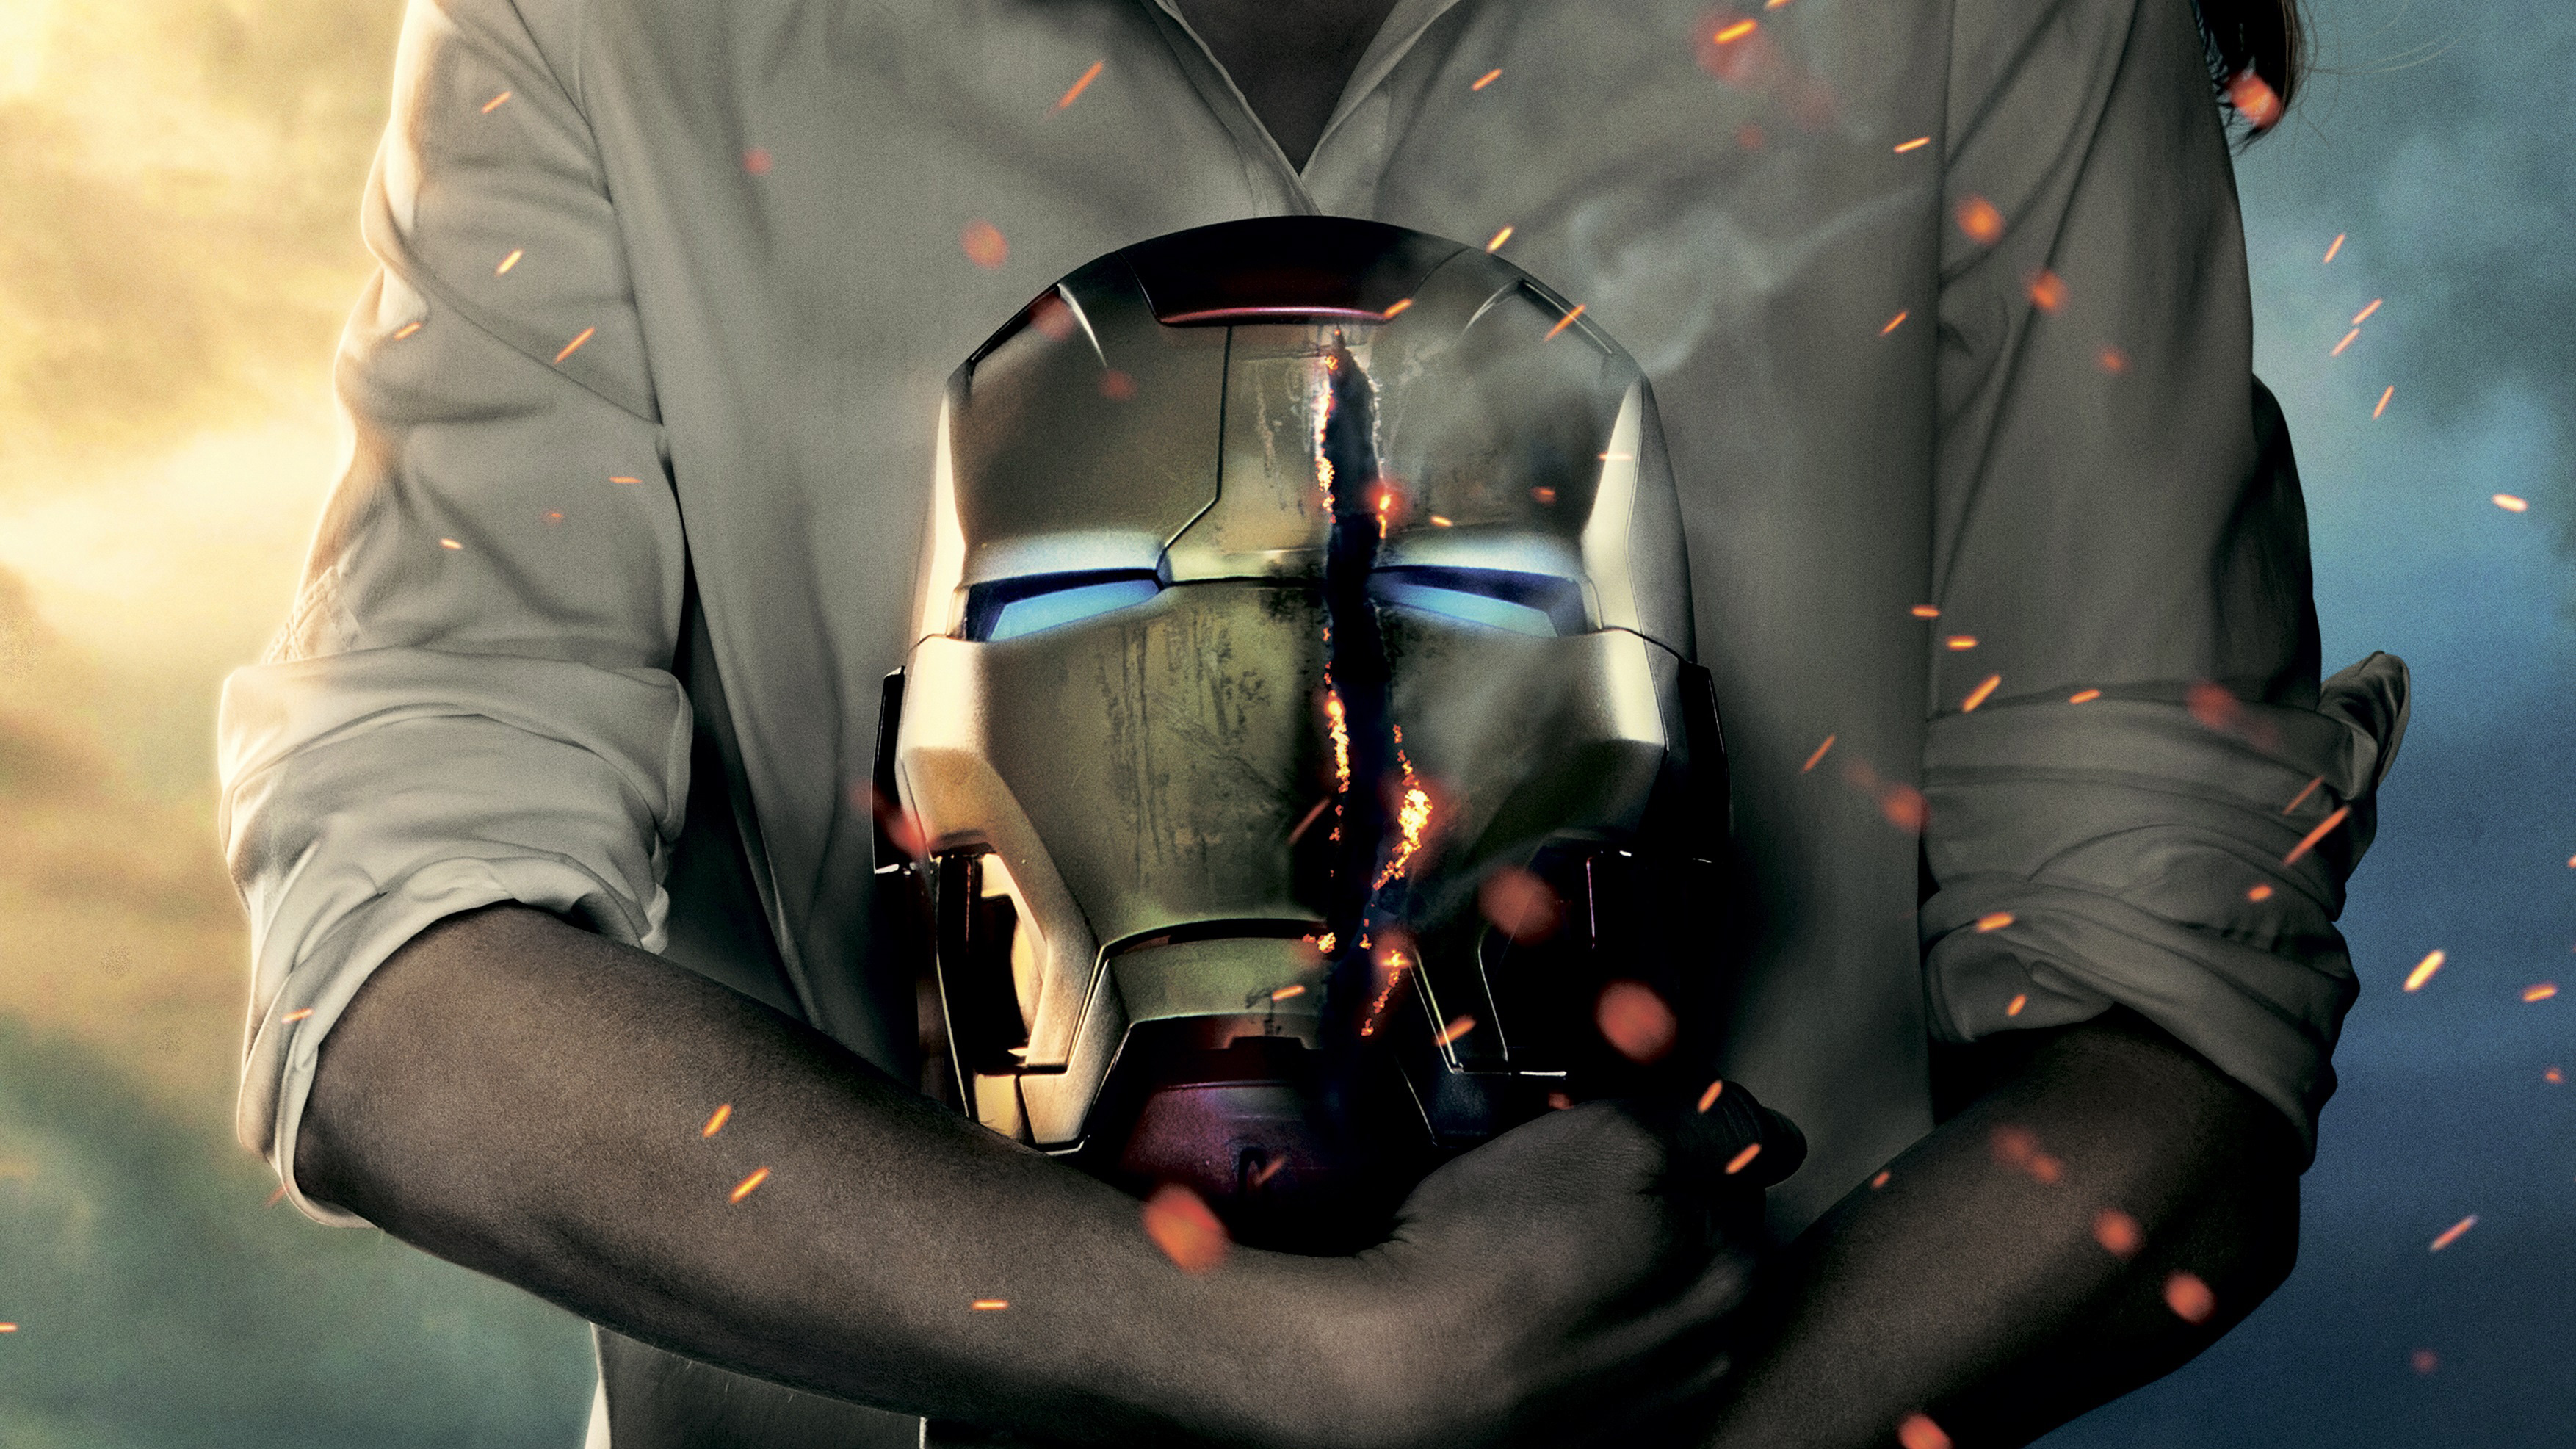 Iron Man 3 Hd Movies 4k Wallpapers Images Backgrounds Photos